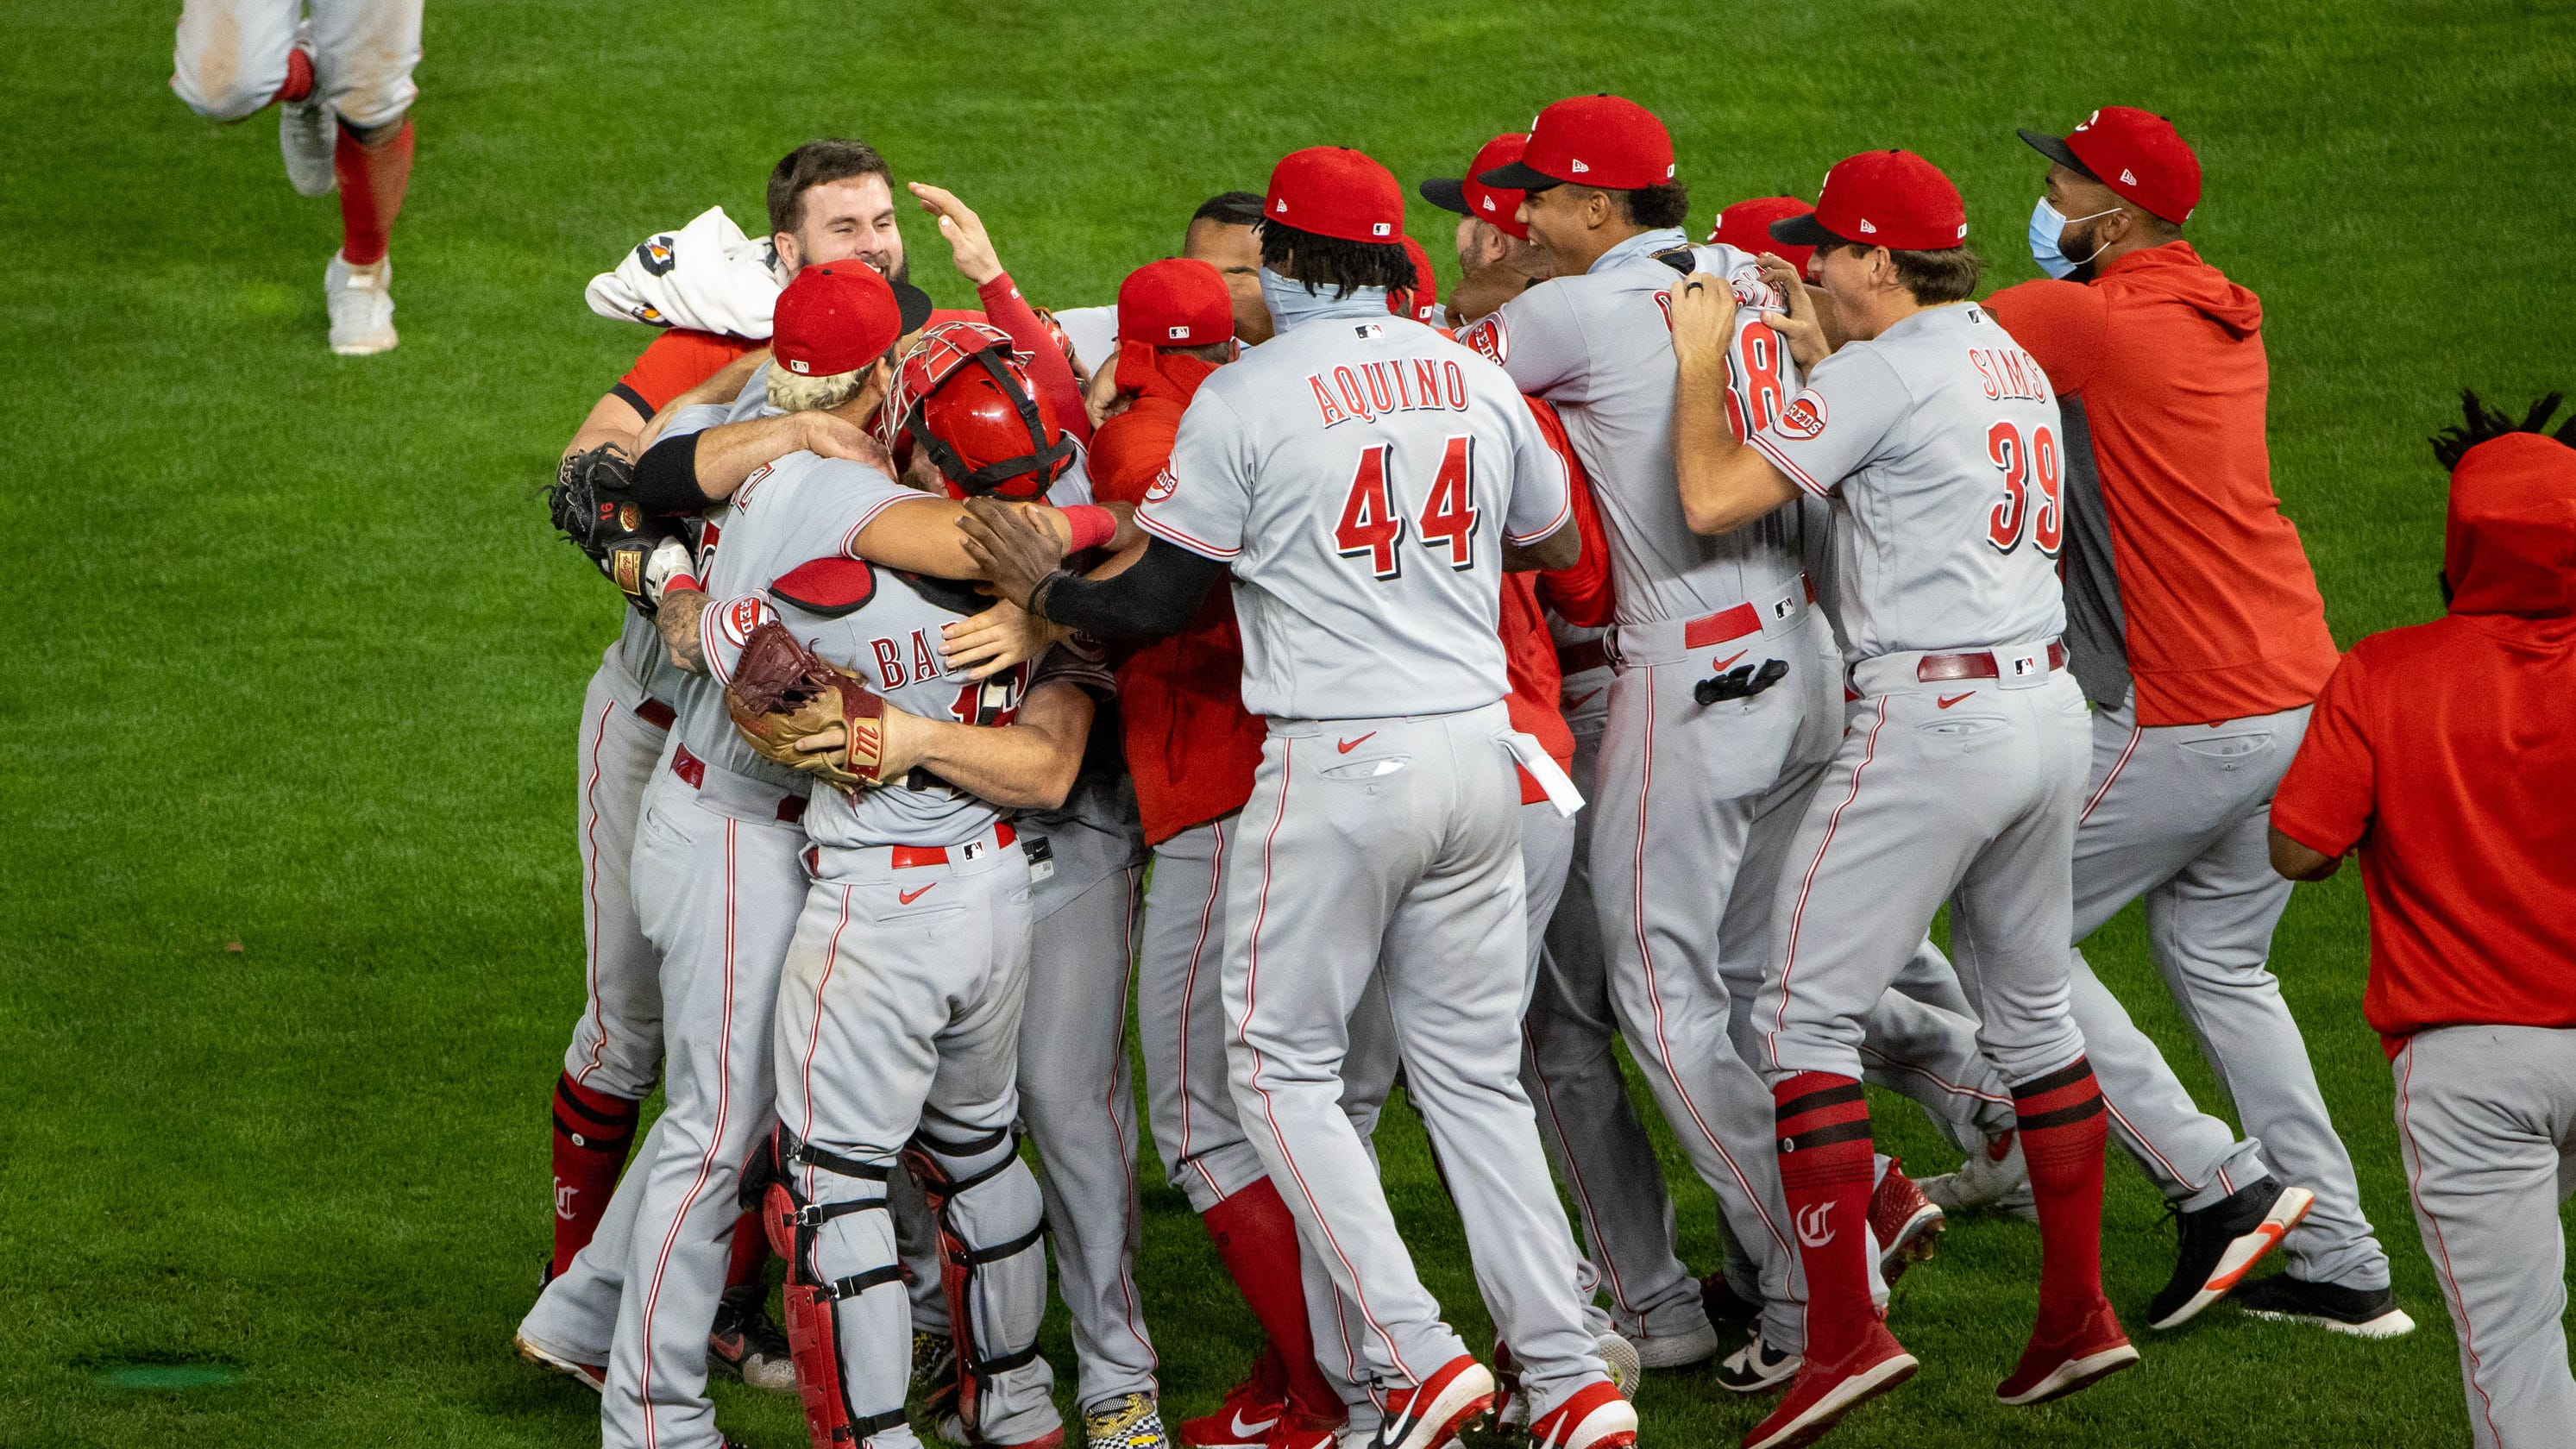 Cincinnati Reds beat Twins, clinch first postseason berth since 2013